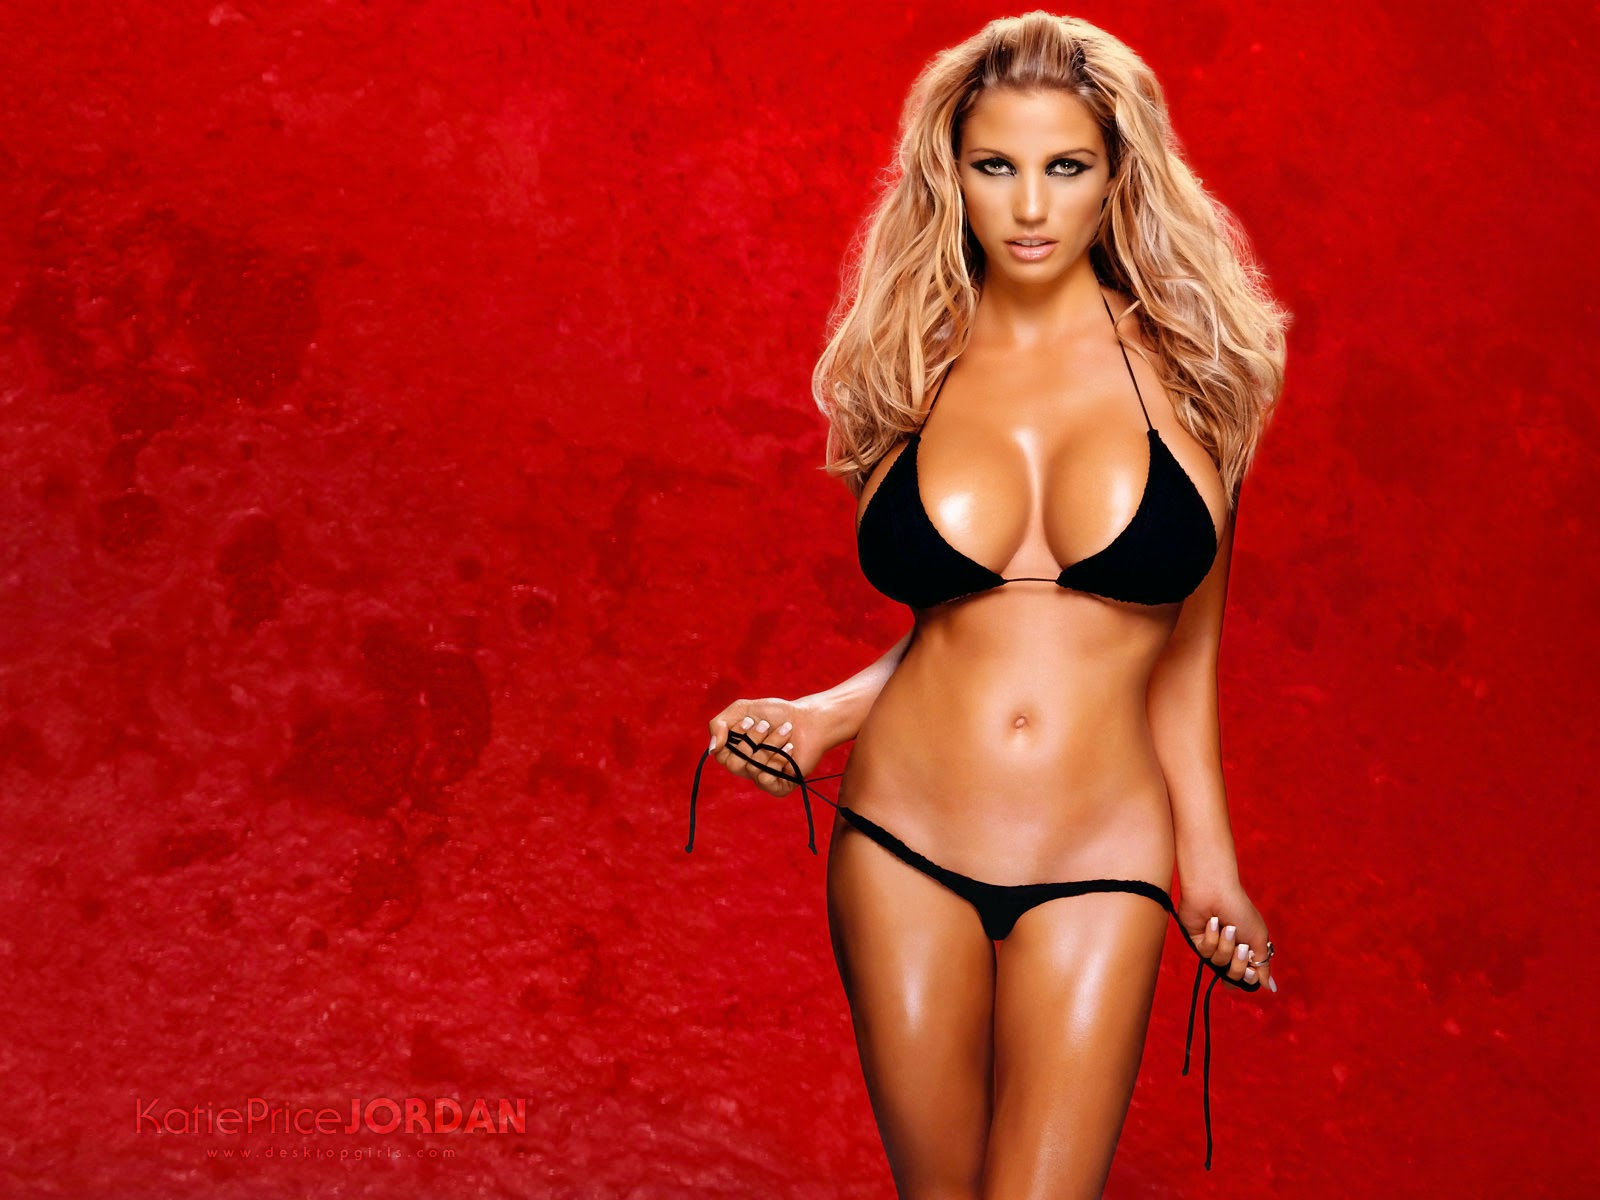 Celebrity katie price hot wallpapers for Hot wallpapers world